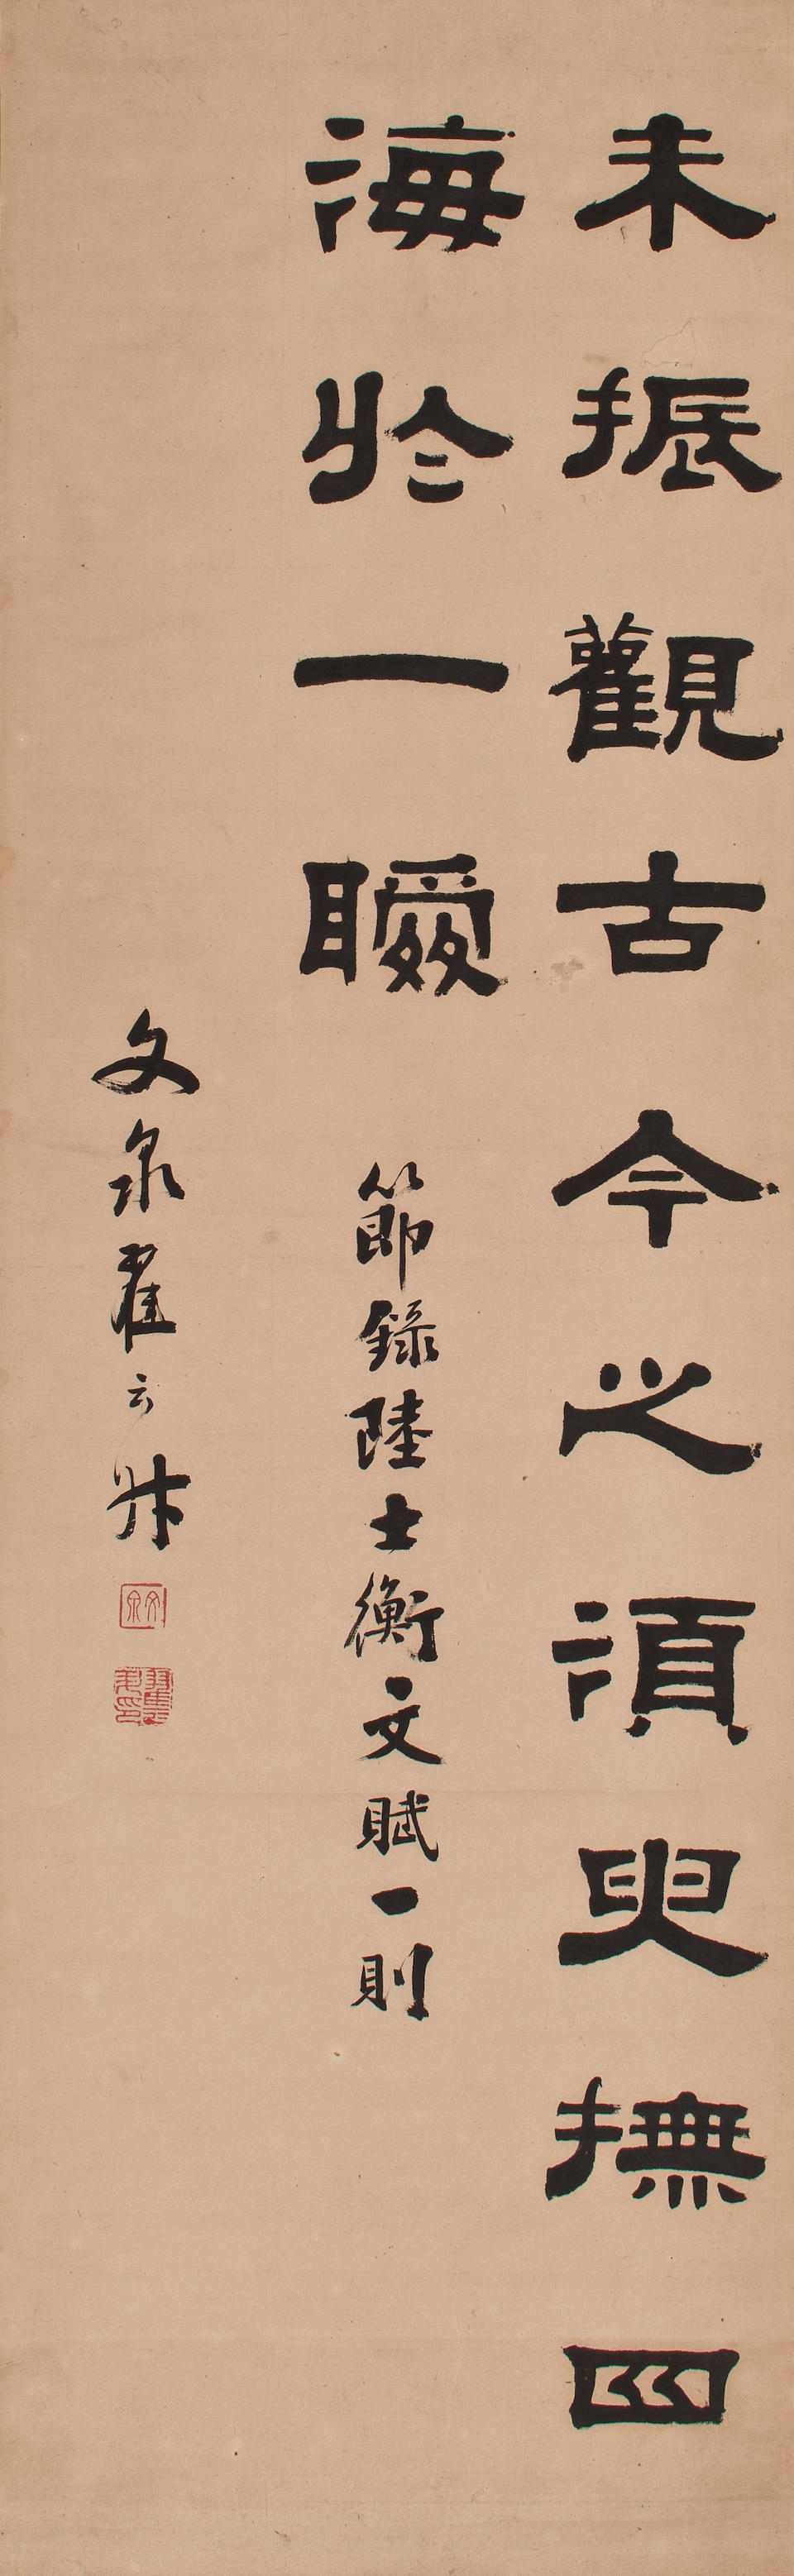 Zhai Yunsheng (1776-1858) Calligraphy in Clerical Script